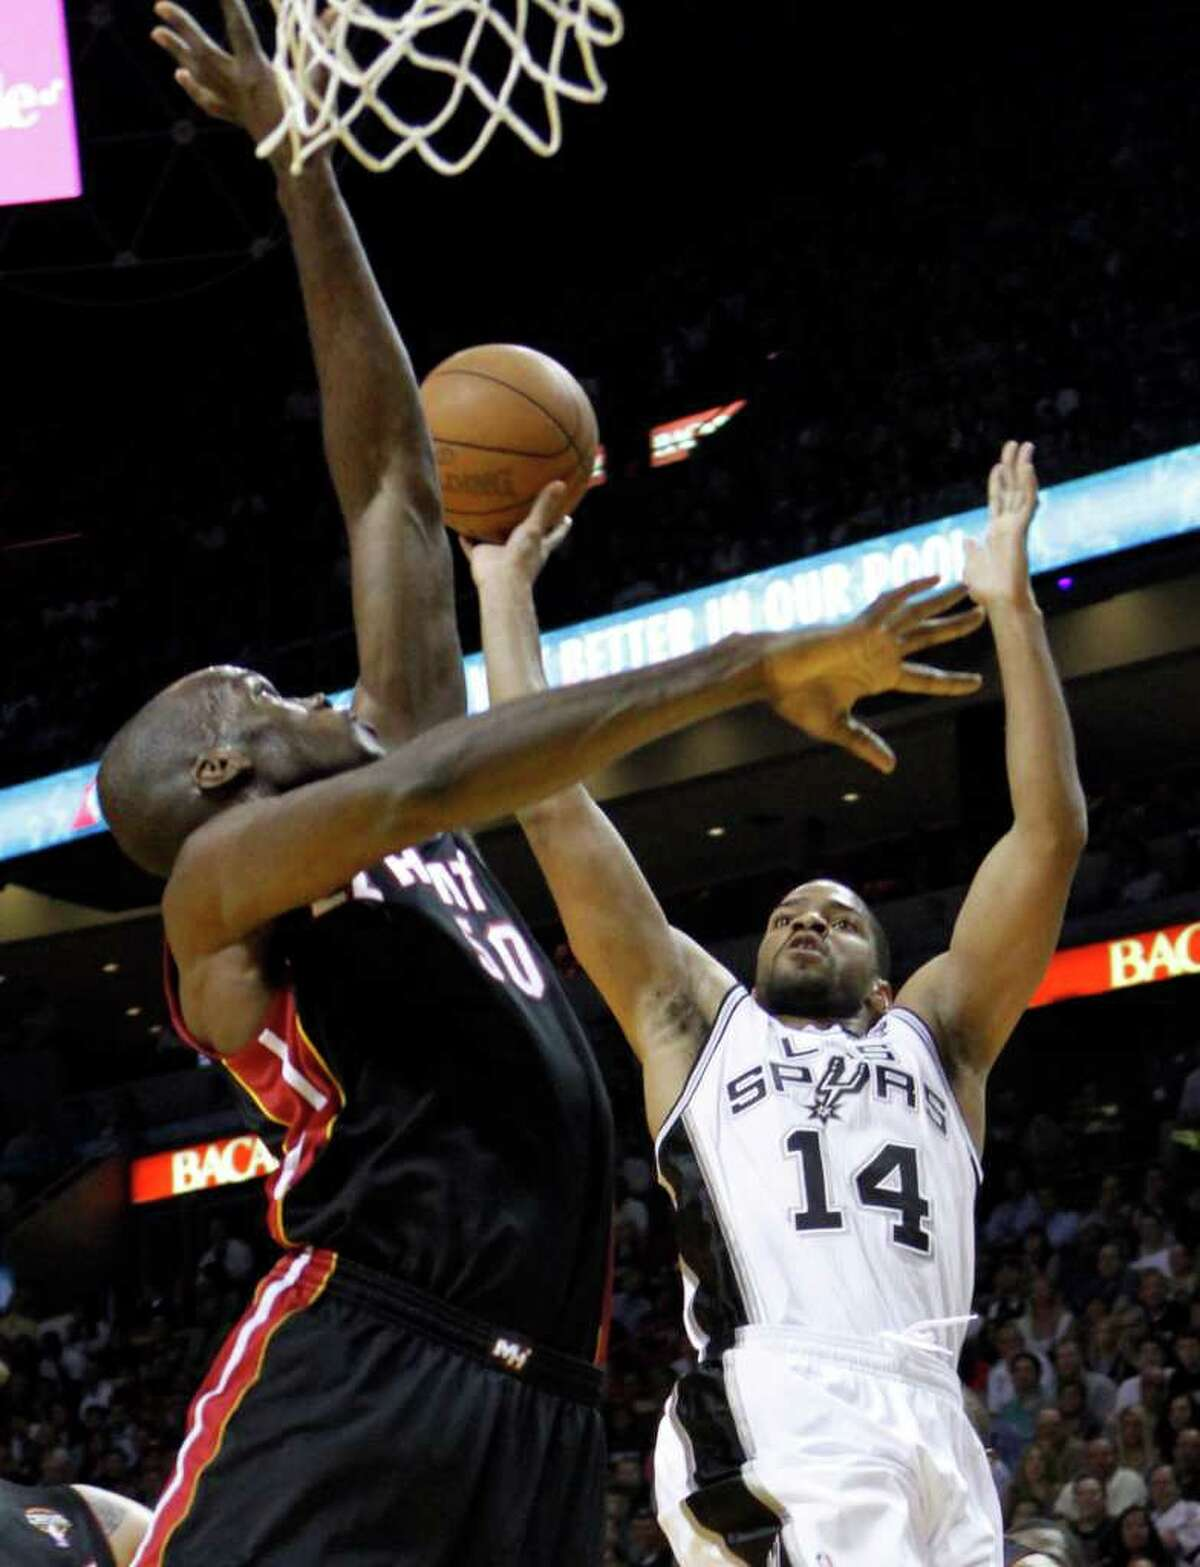 San Antonio Spurs' Gary Neal (14) prepares to shoot as Miami Heat's Joel Anthony (50) defends in the first quarter of an NBA basketball game in Miami, Monday, March 14, 2011.